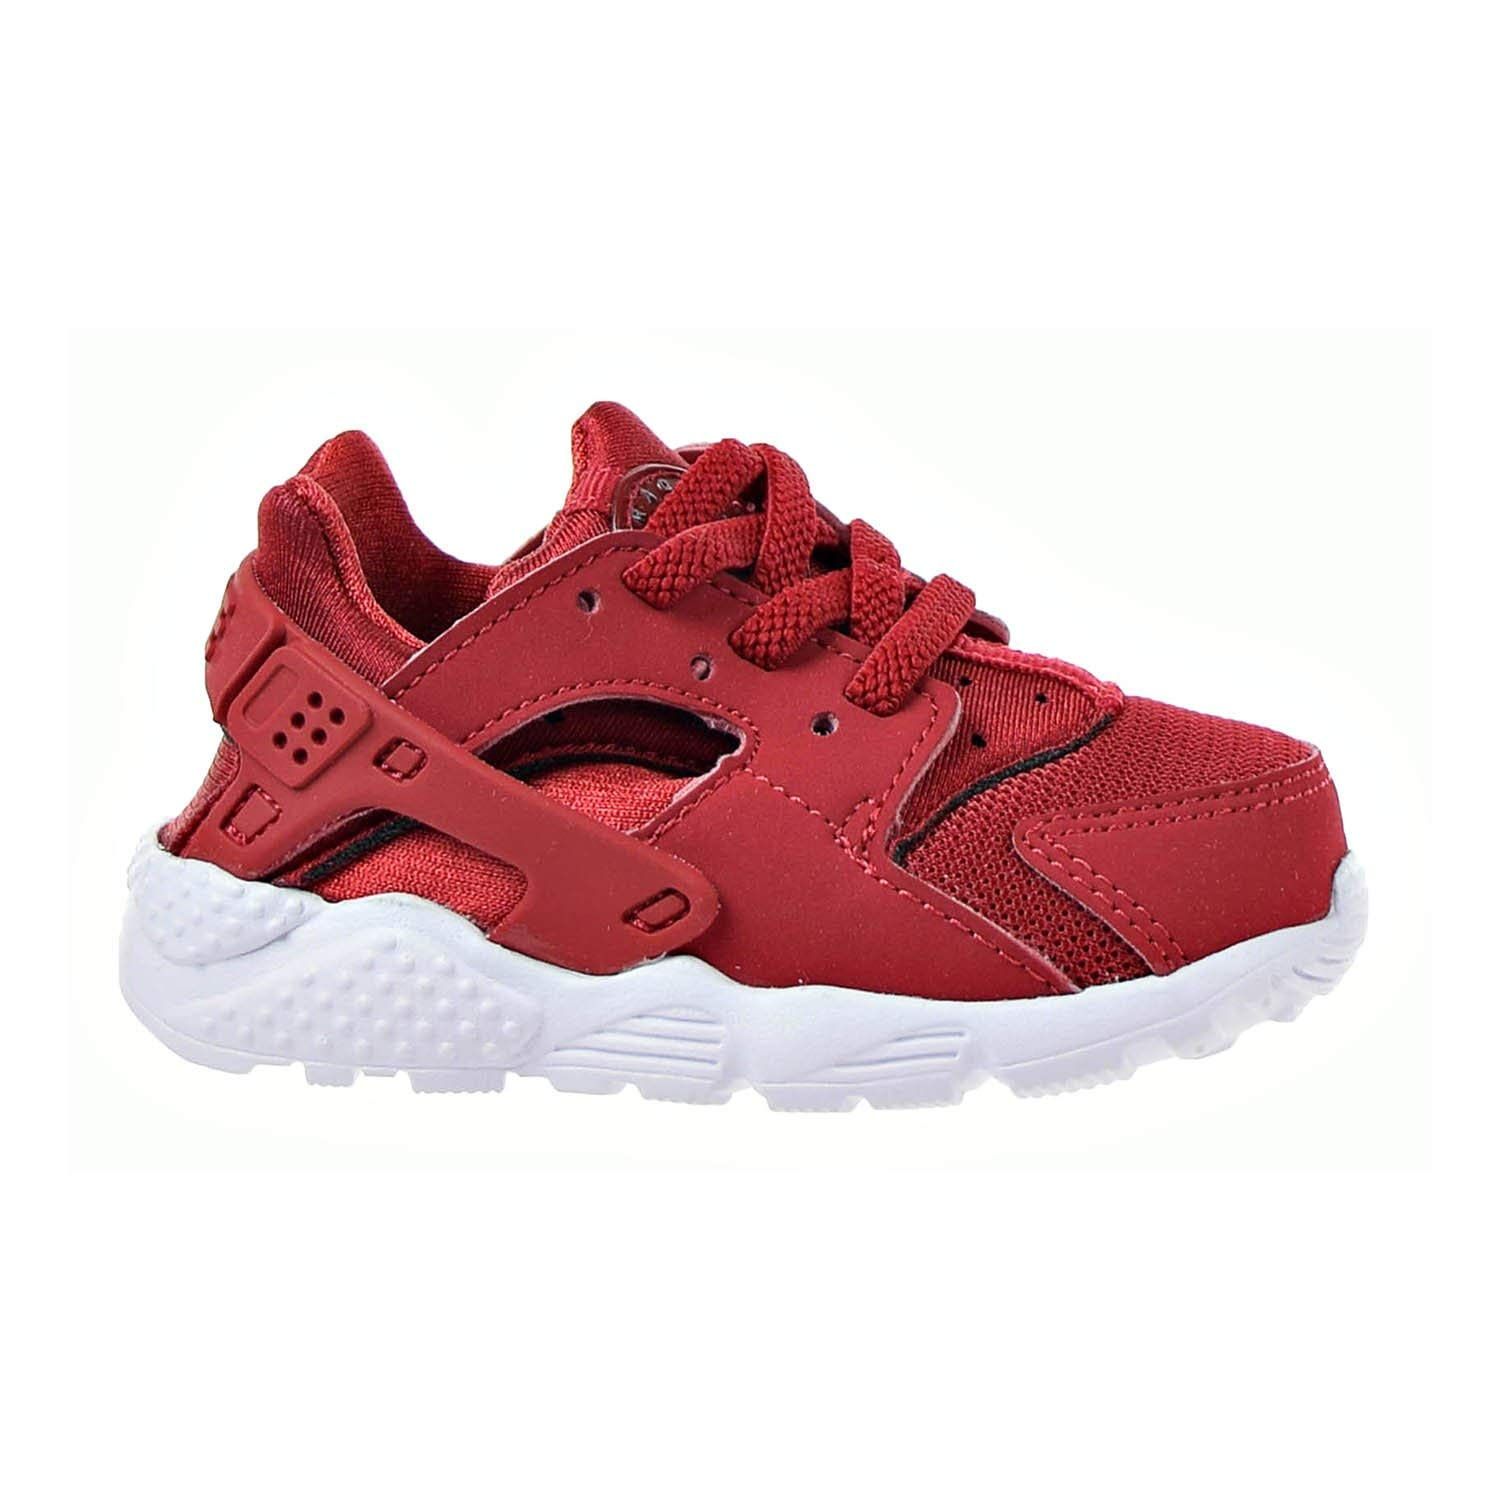 hot-selling professional 50% off united states Nike Huarache Run Toddlers' Running Shoes Gym Red/Gym Red/Dark Grey  704950-604 (8 M US)